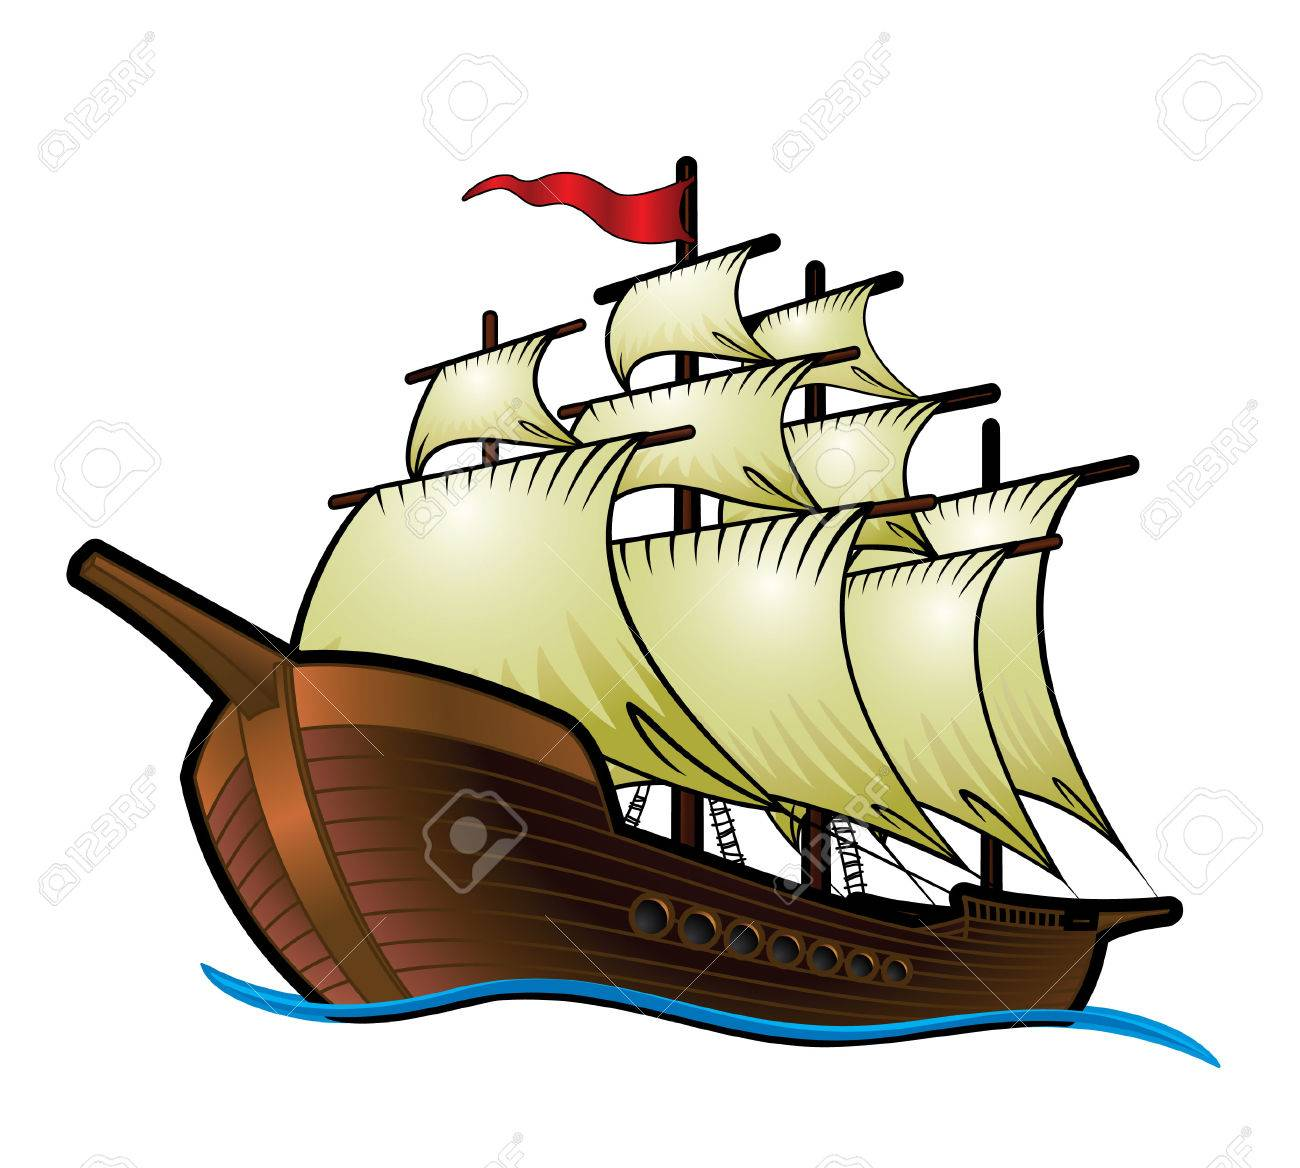 1300x1168 Pirate Ship Royalty Free Cliparts, Vectors, And Stock Illustration